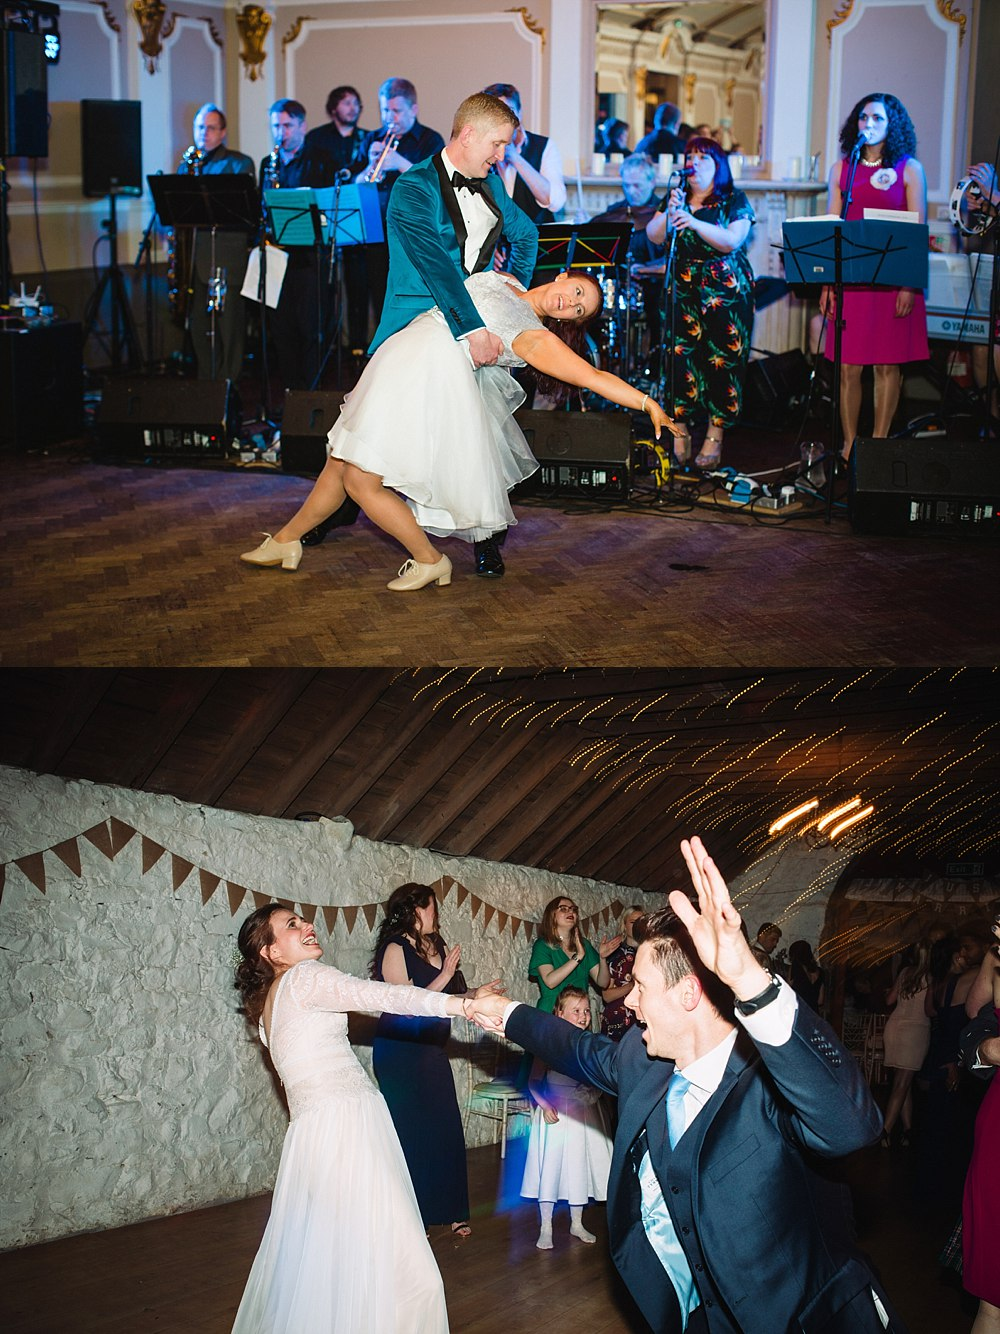 fun and relaxed wedding photography Glasgow 4-6.jpg